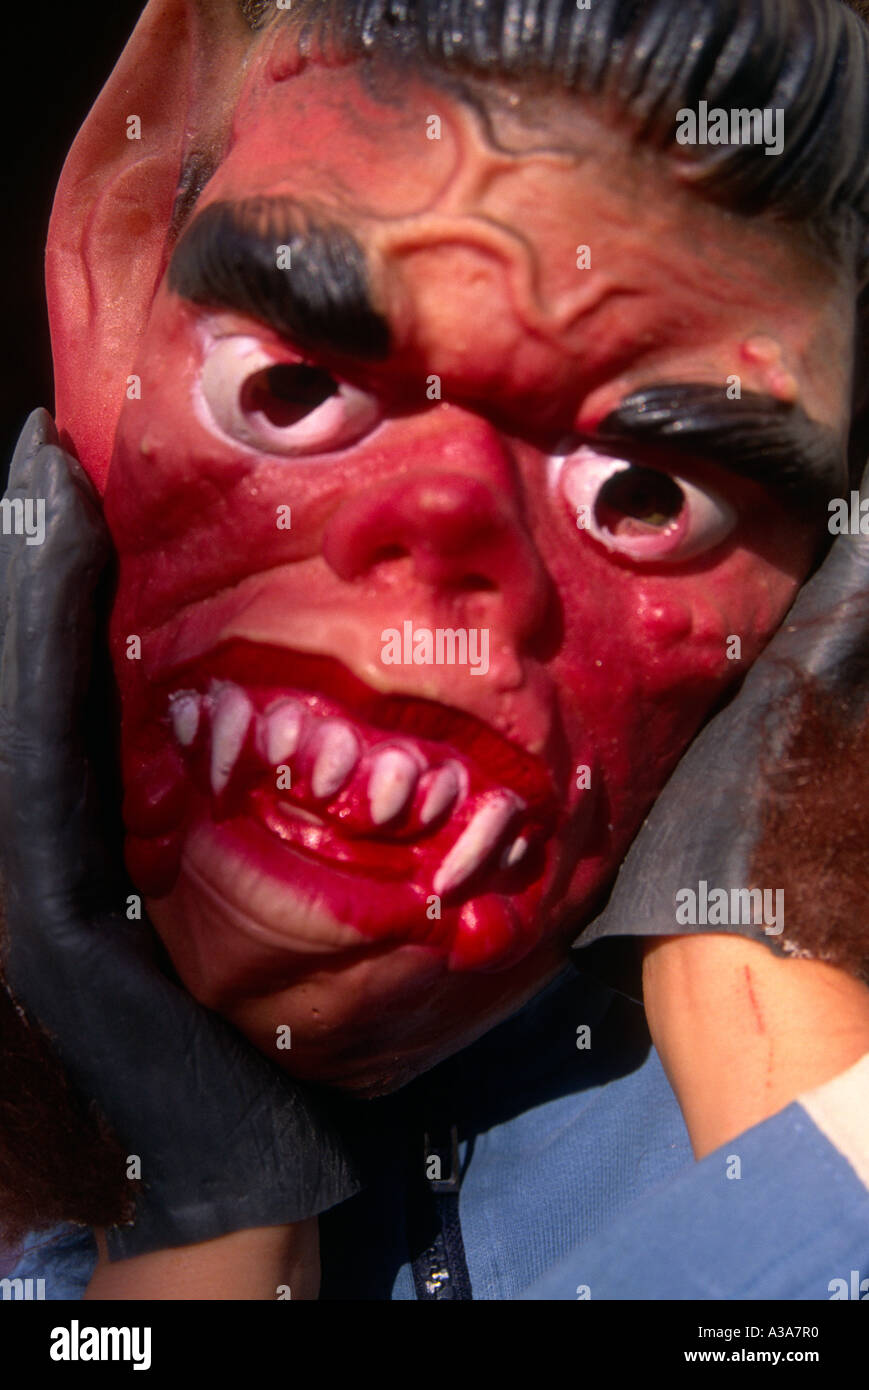 child wearing scary halloween face mask and hands in hairy gloves holding head with teeth and fangs